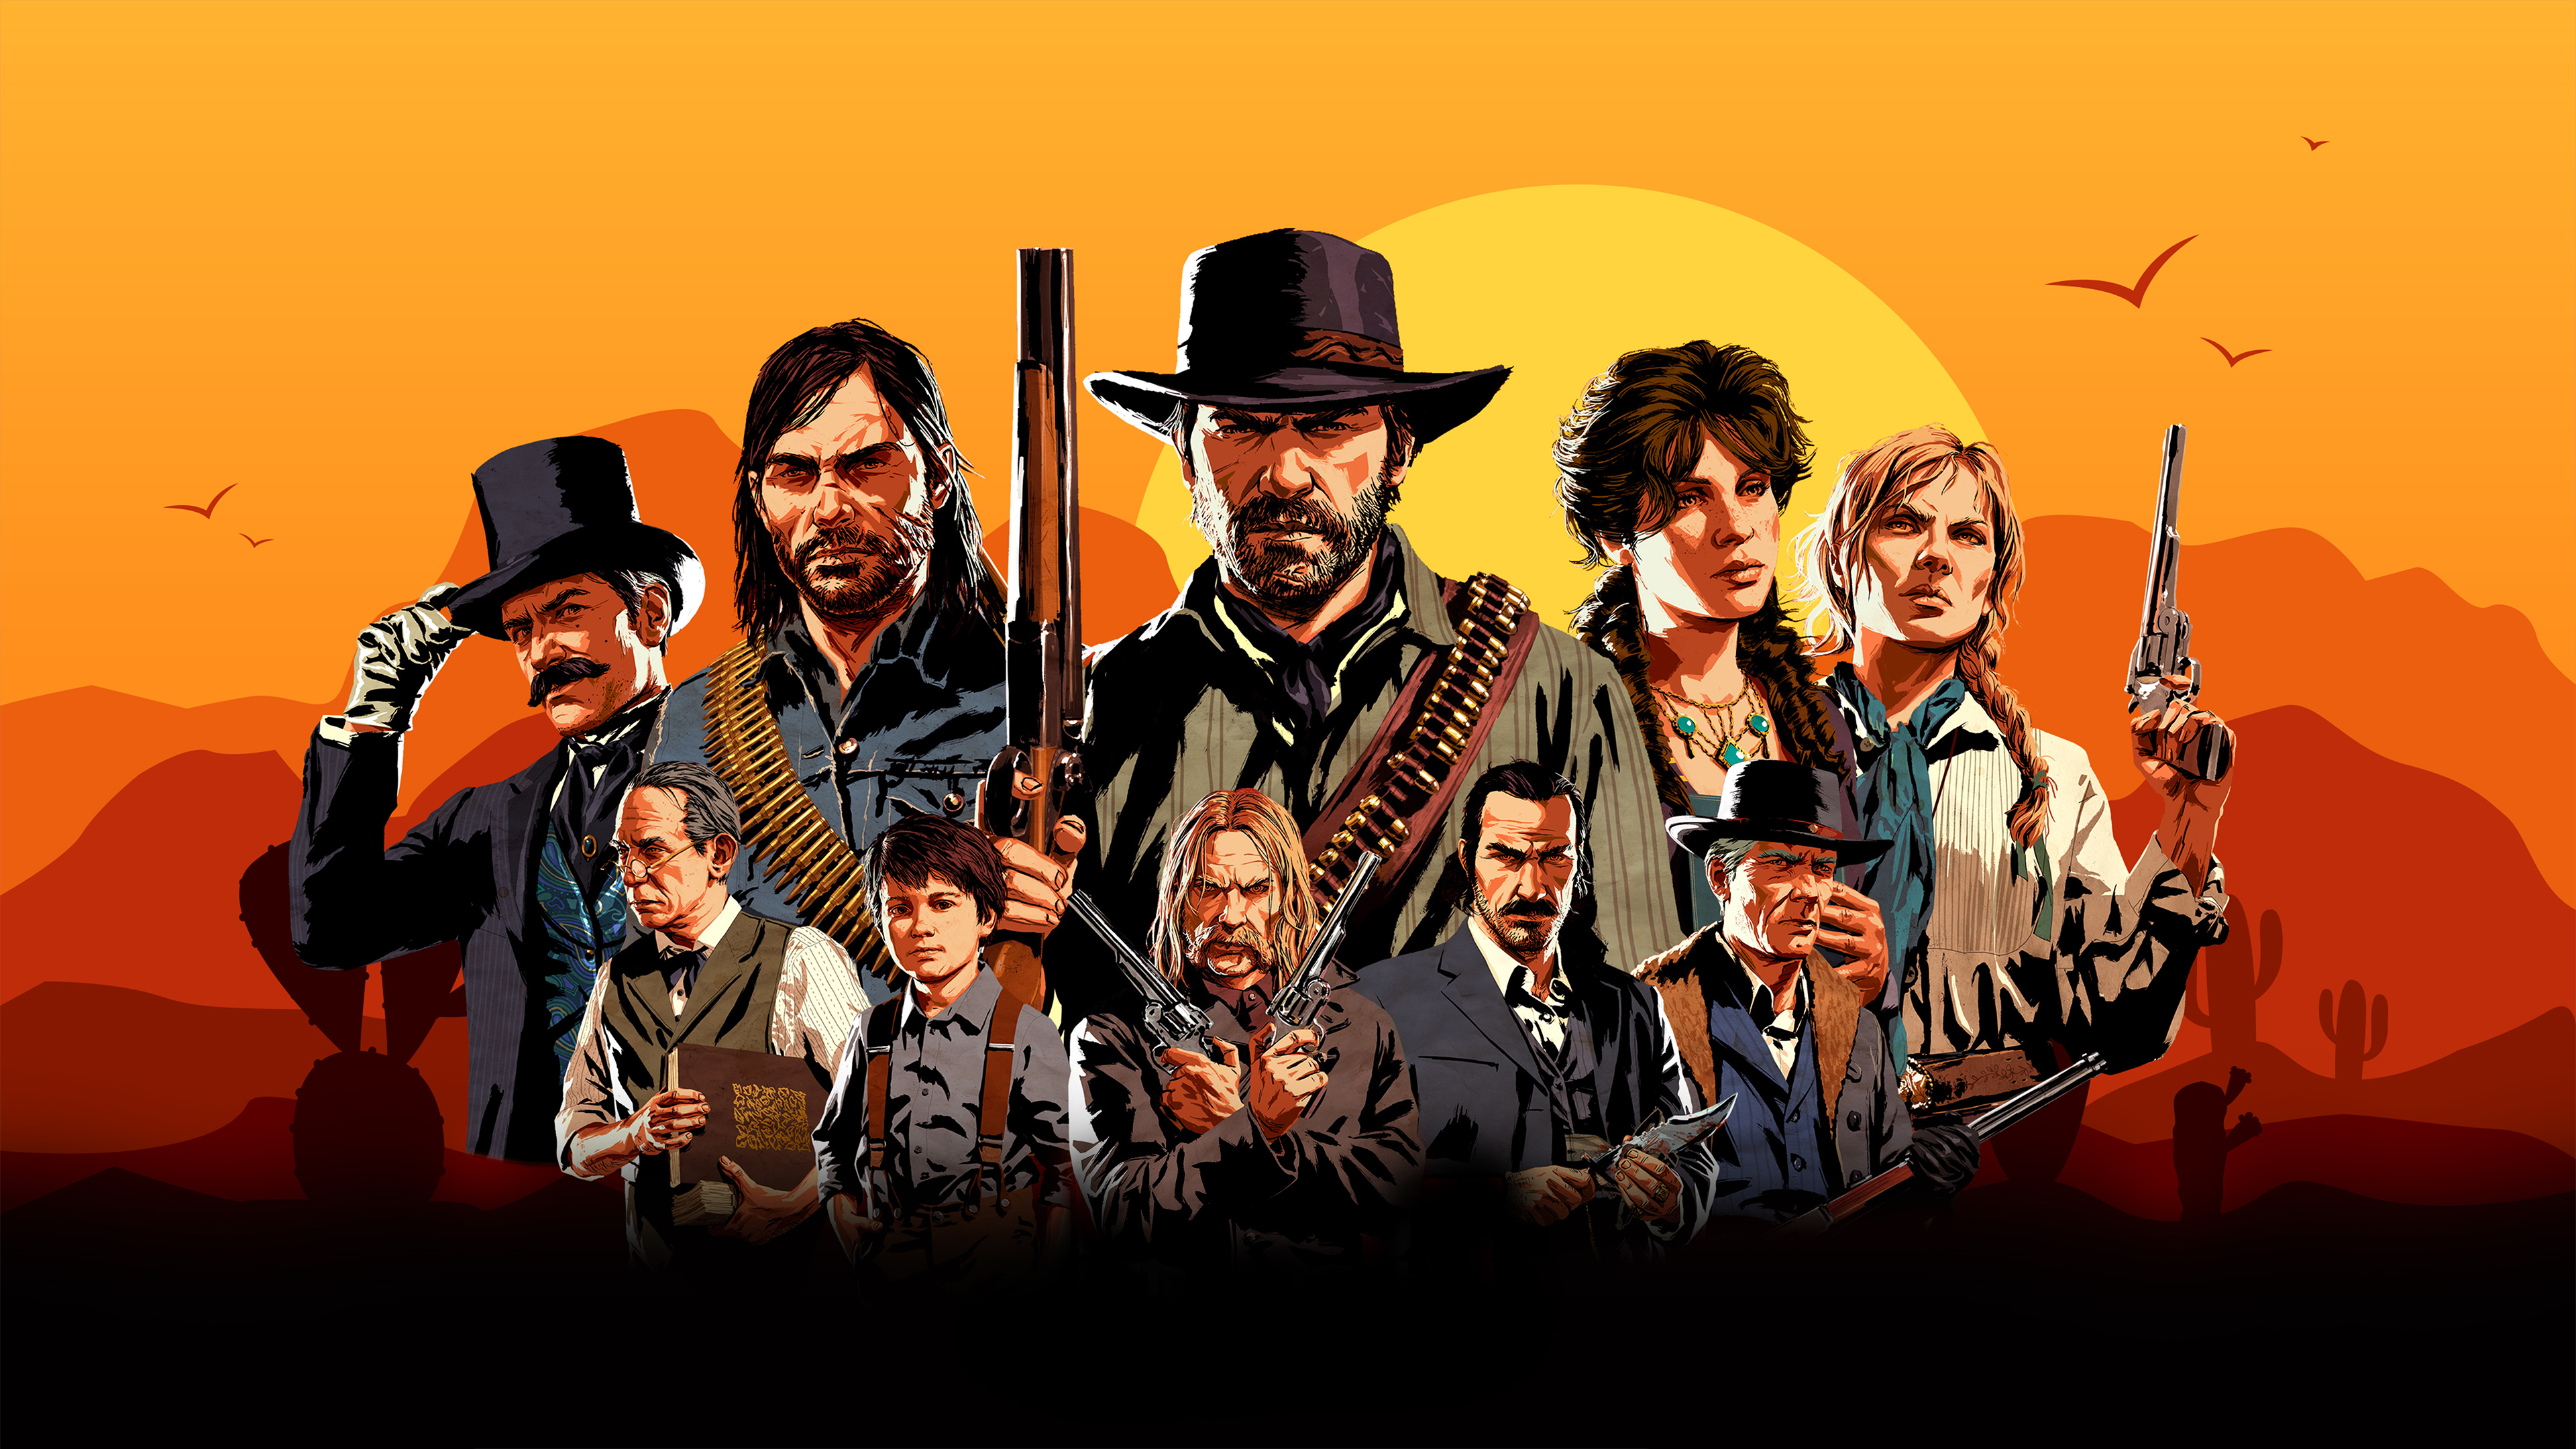 red dead redemption 2 video game 4k 1544287260 - Red Dead Redemption 2 Video Game 4k - red dead redemption 2 wallpapers, ps games wallpapers, hd-wallpapers, games wallpapers, 4k-wallpapers, 2018 games wallpapers